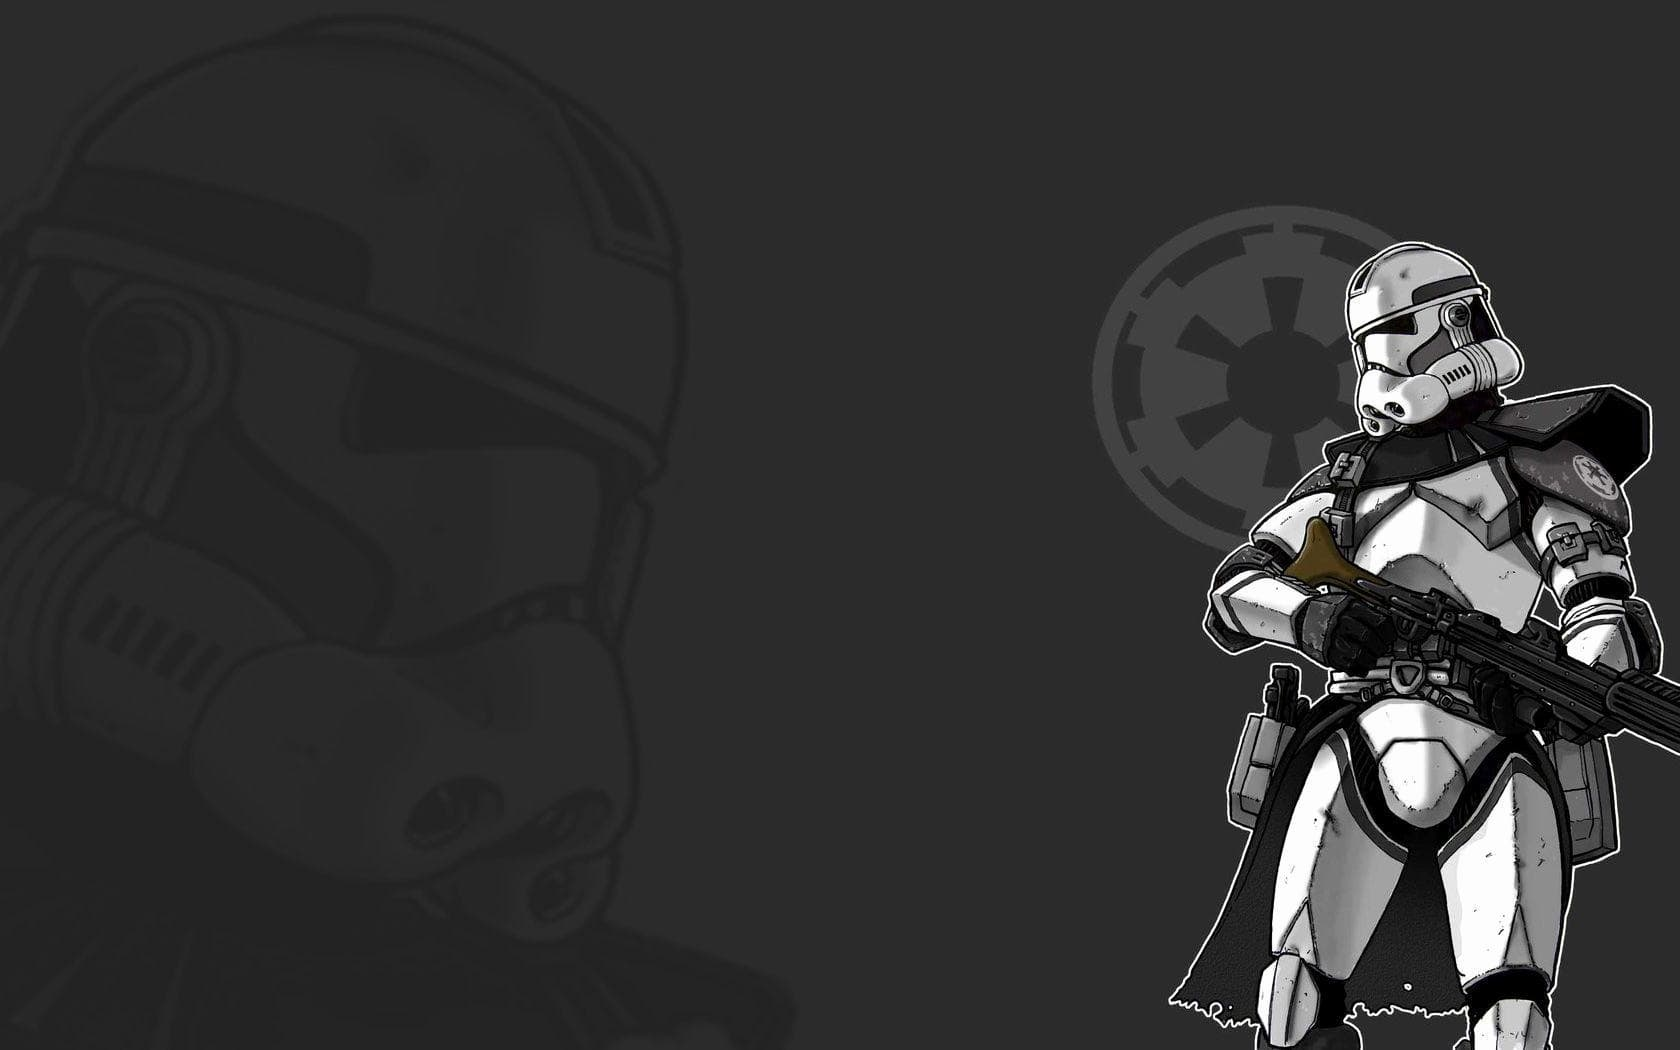 Star Wars The Clone Wars Background Kolpaper Awesome Free Hd Wallpapers